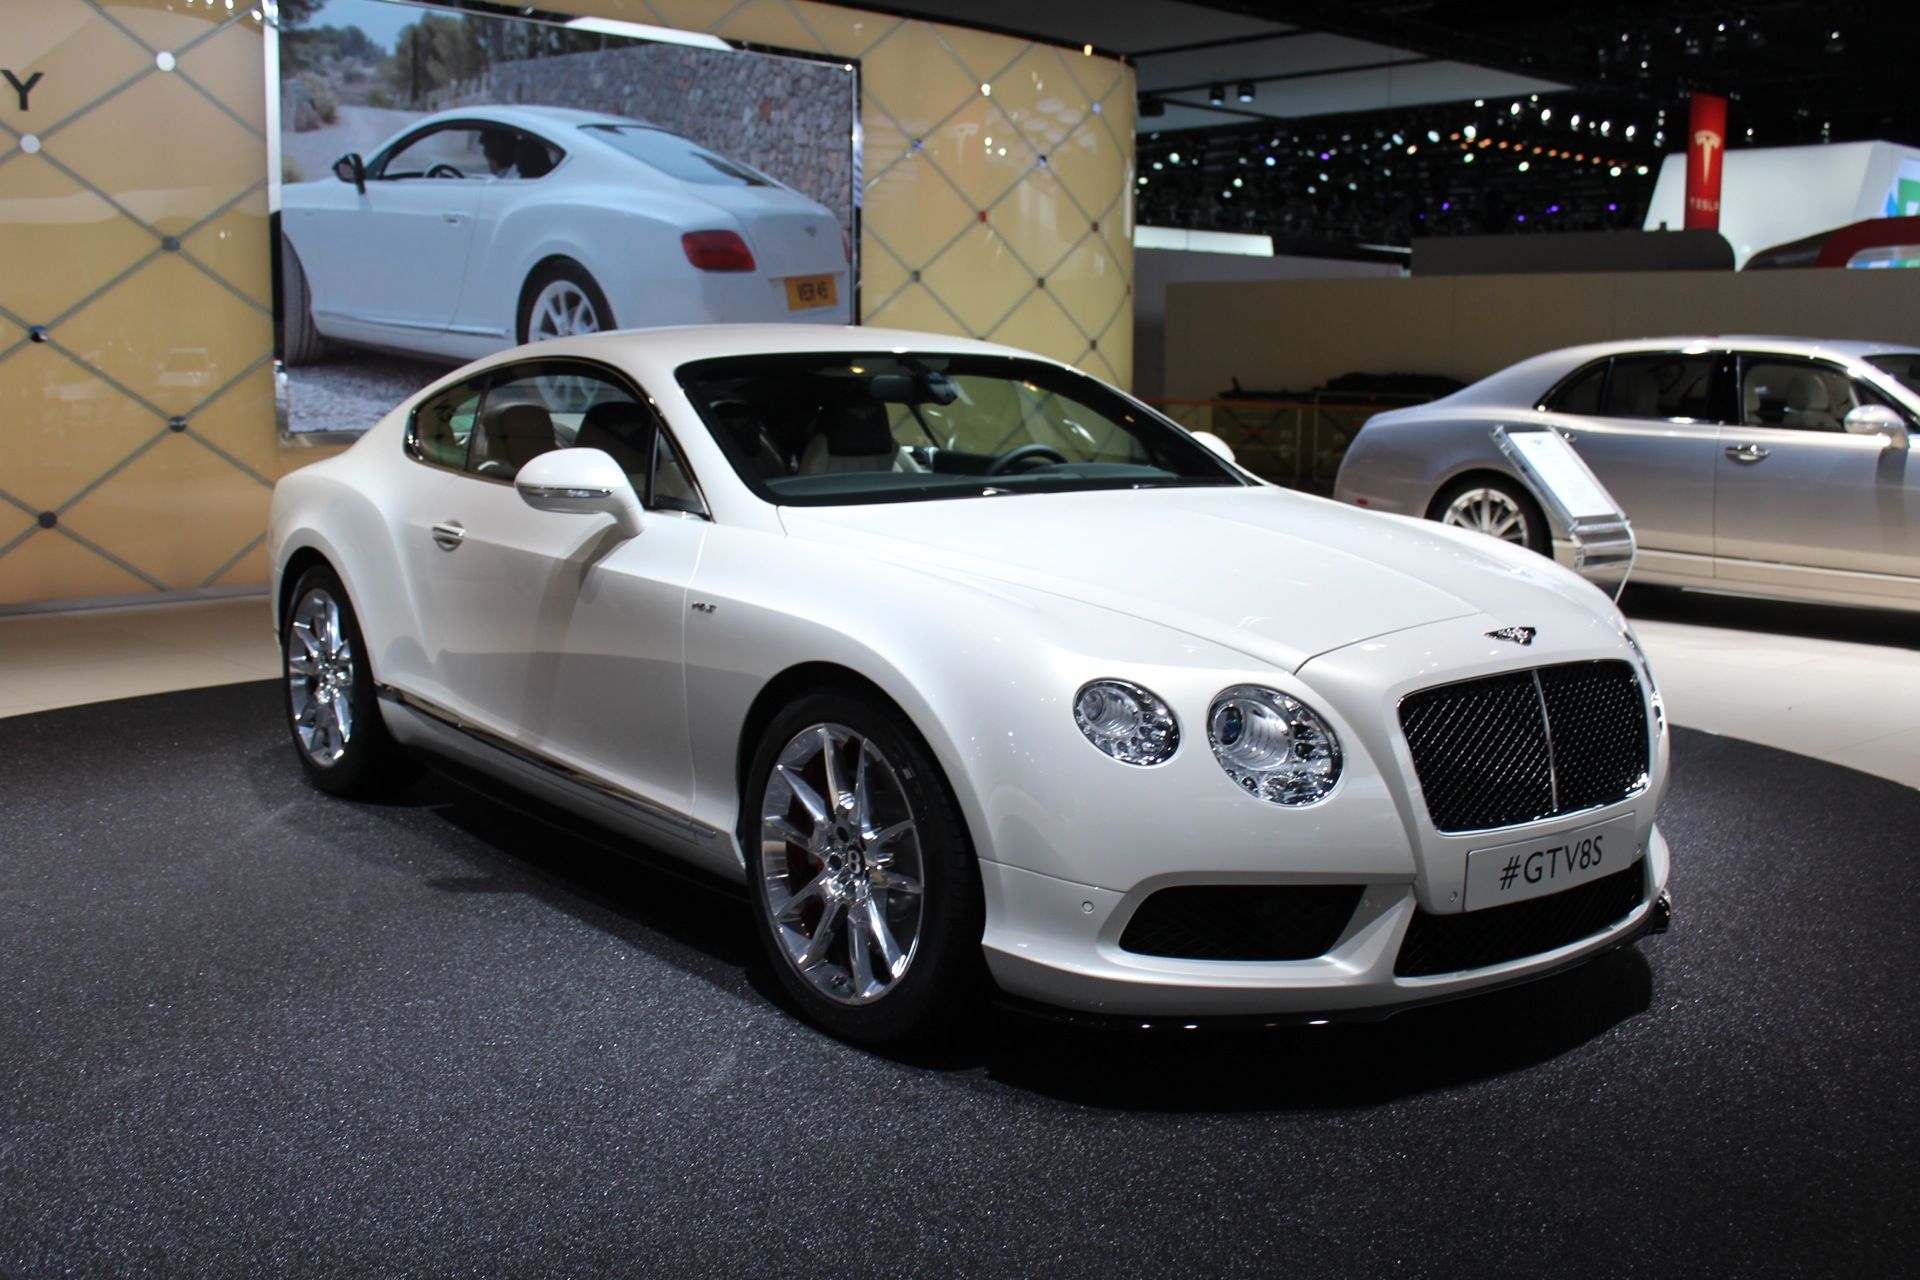 2014 Bentley GT V8 S Preview, Live Photos: 2014 Detroit